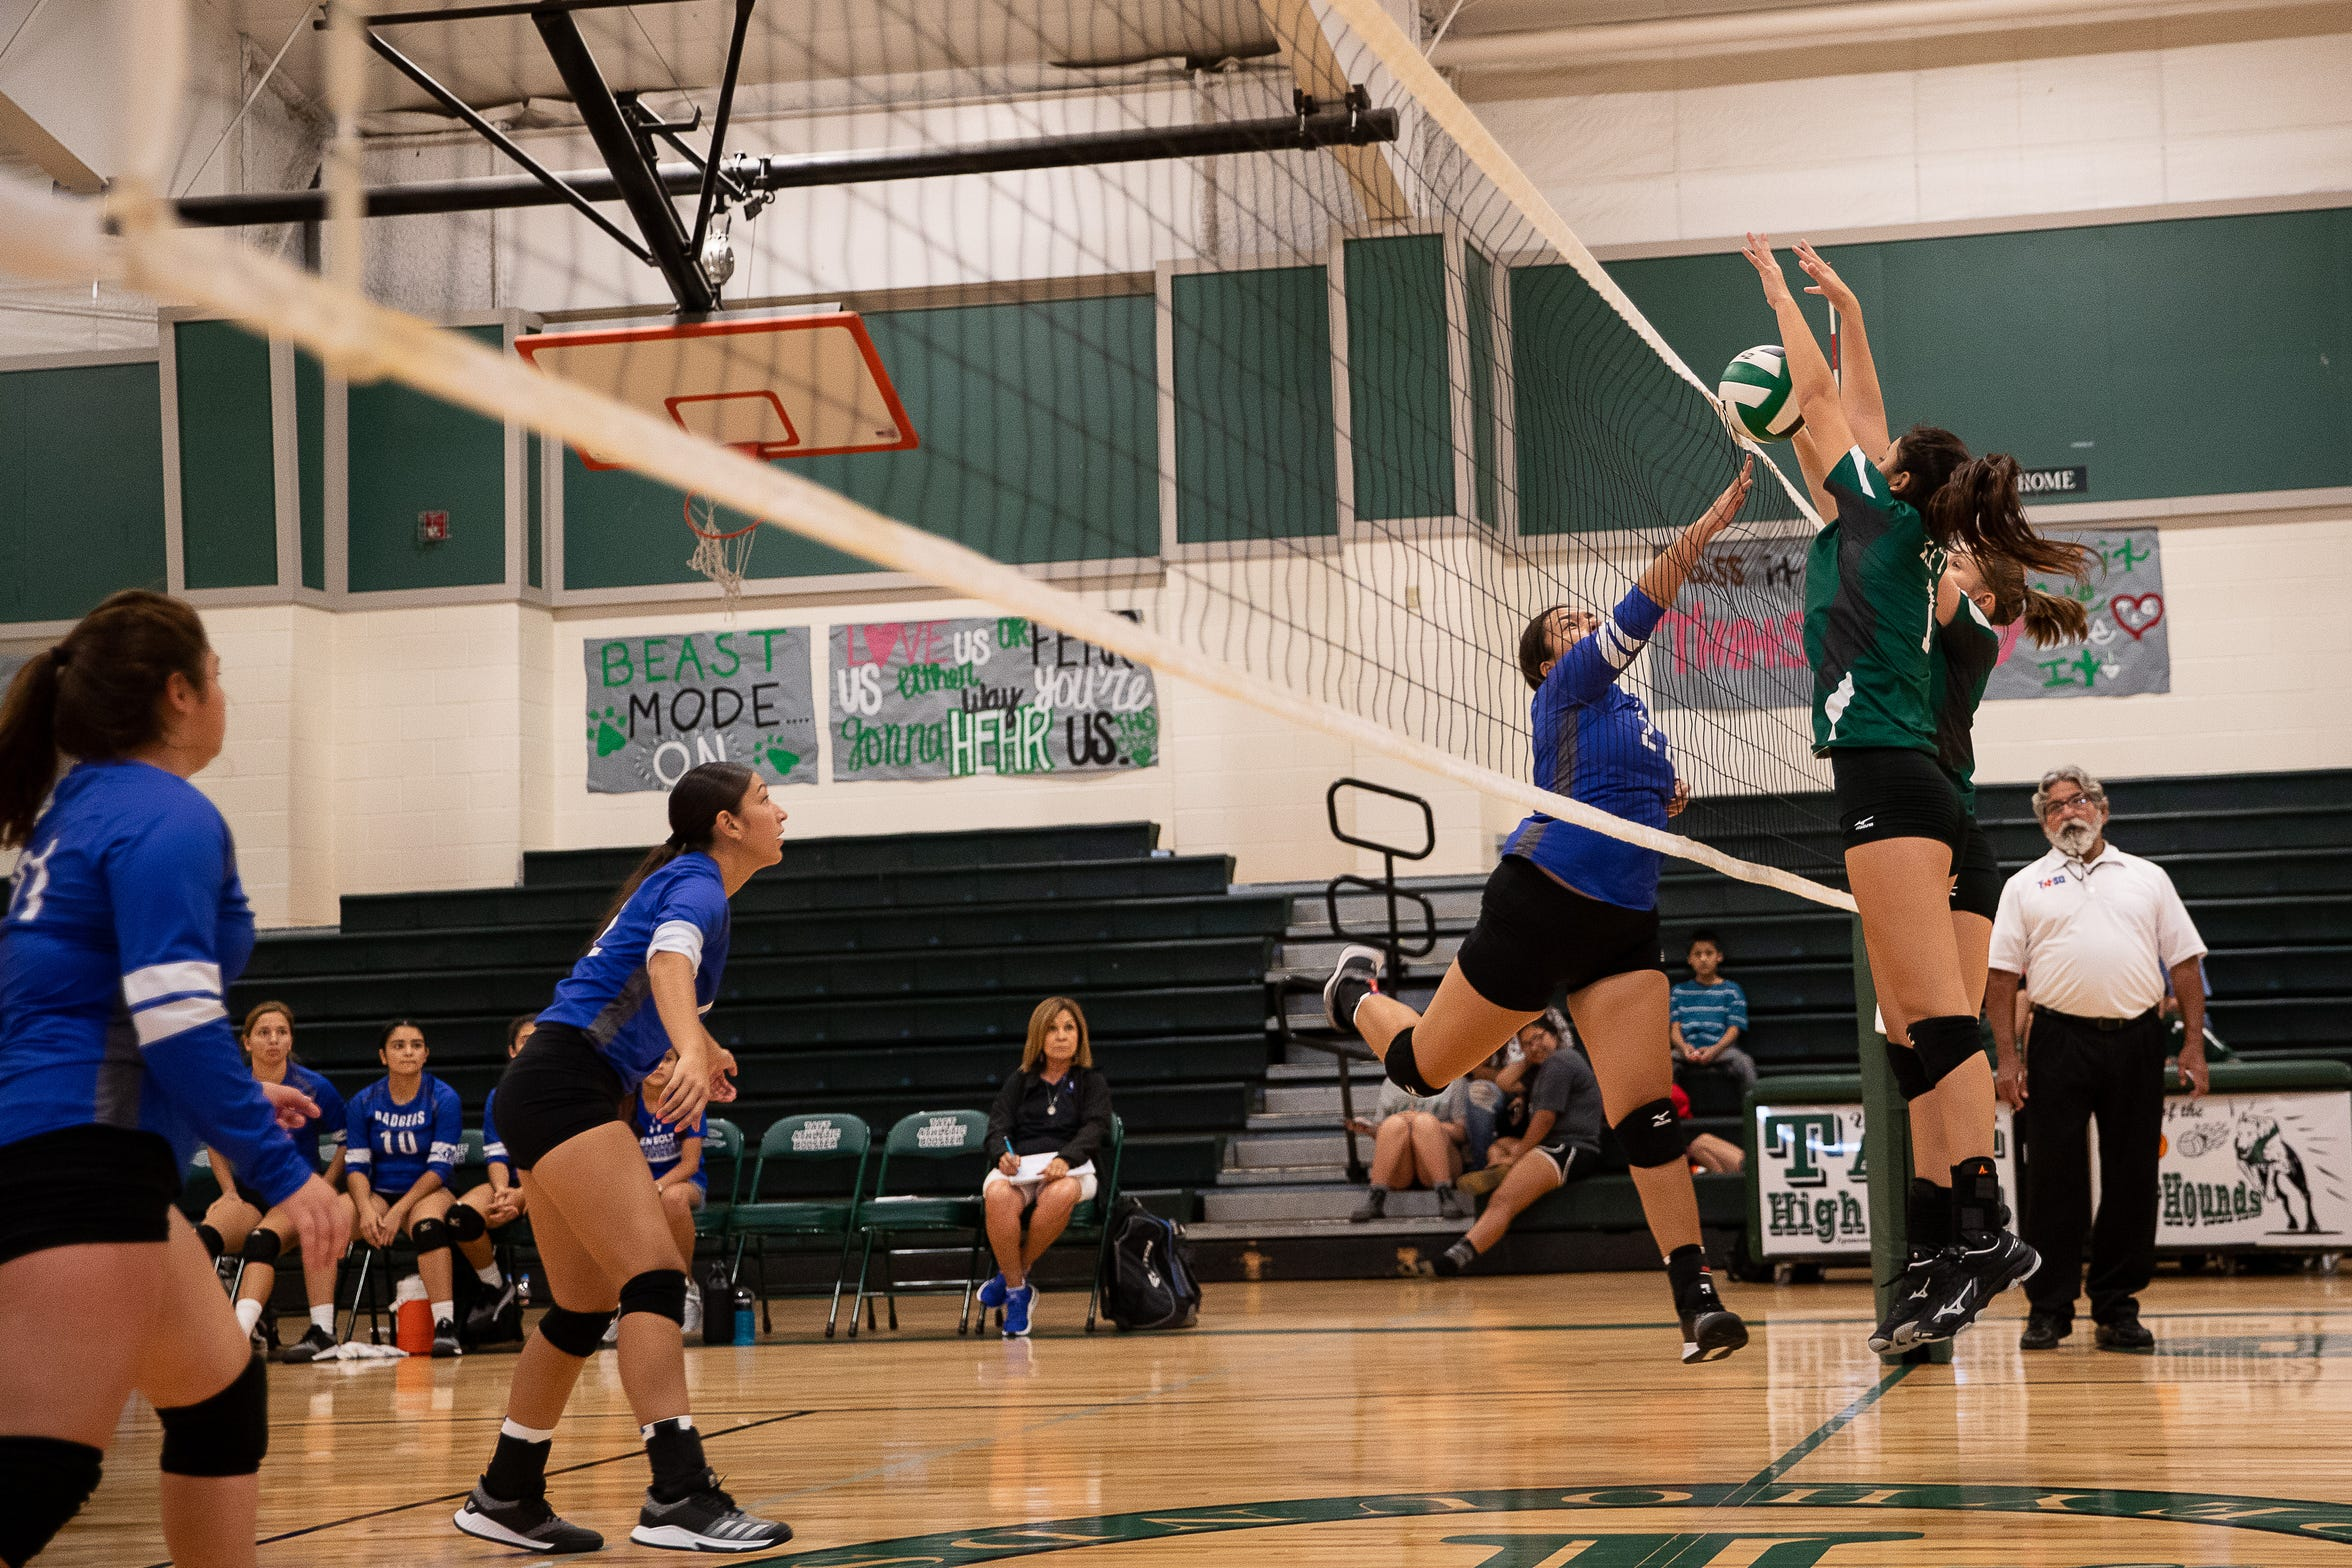 Taft players jump to block a spike during a game in their newly rebuilt gymnasium on Thursday, Aug. 23, 2018. Their  gym was heavily damaged during Hurricane Harvey and have played and practiced on the road in 2017.